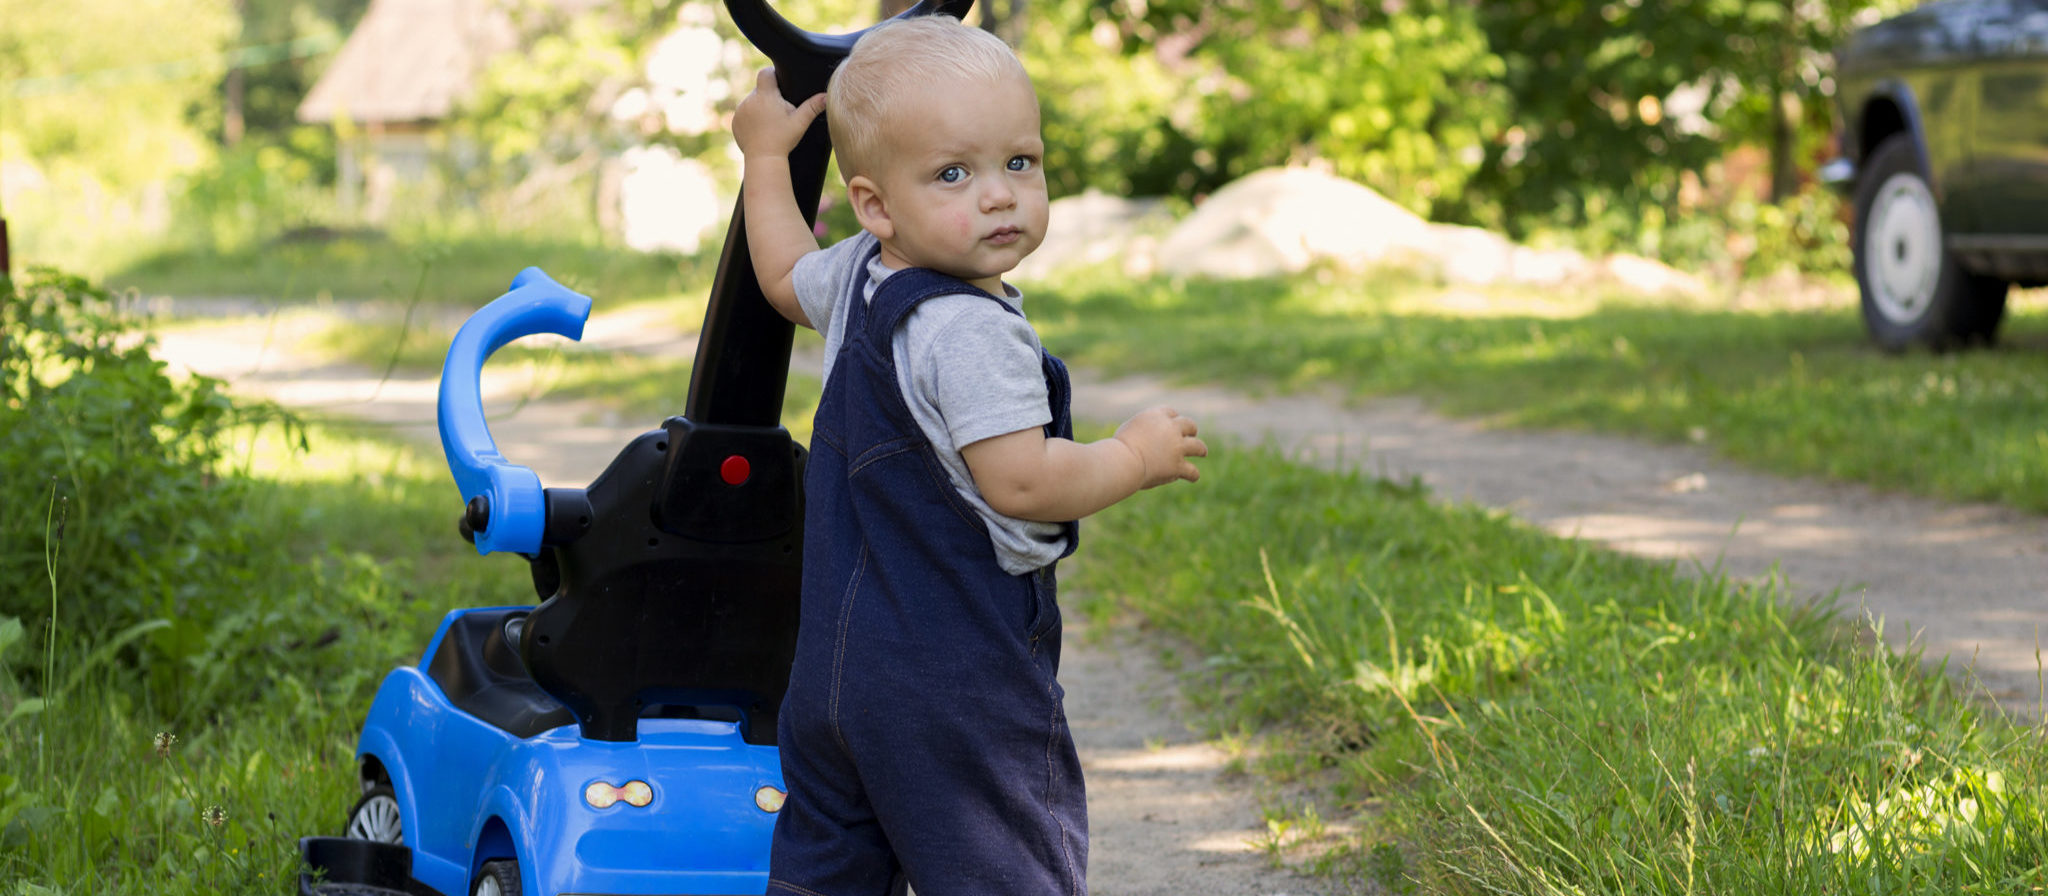 The right baby push car with handle is fun and delivers great outdoor experiences for all.